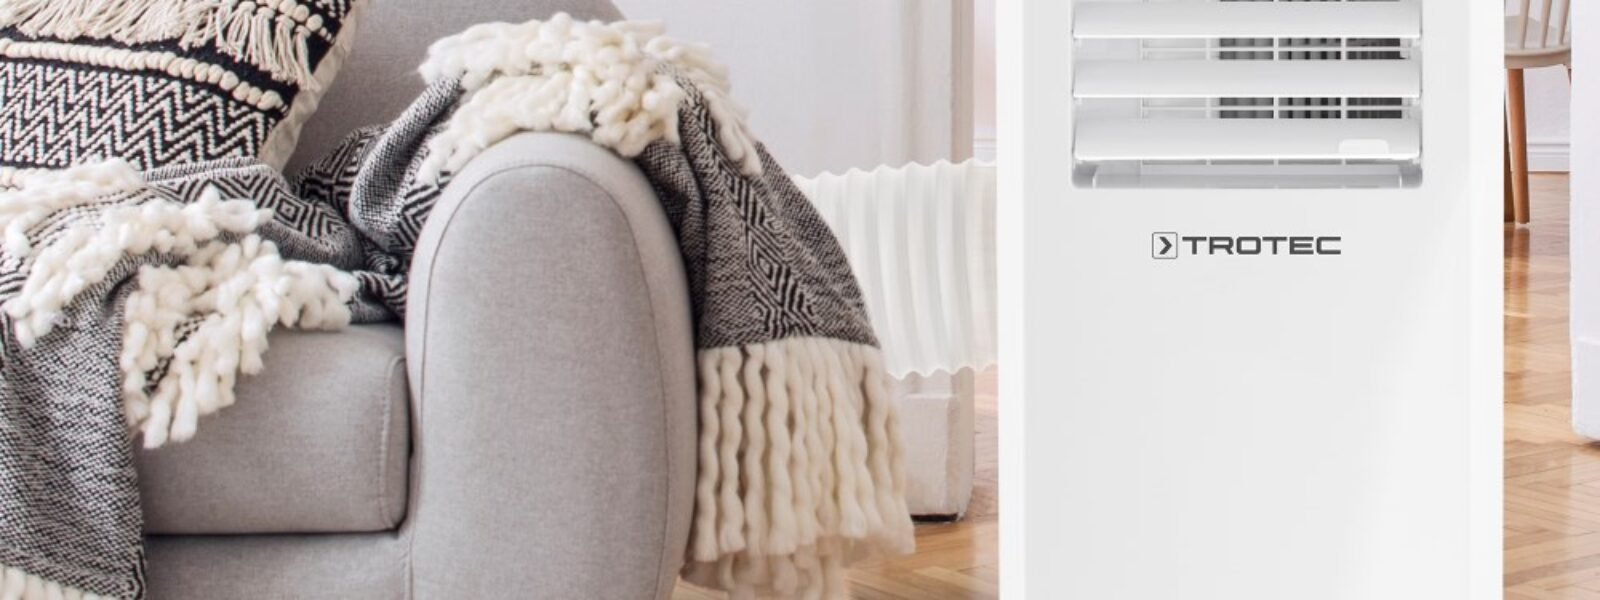 DISCOVER OUR AIR PURIFICATION SYSTEMS